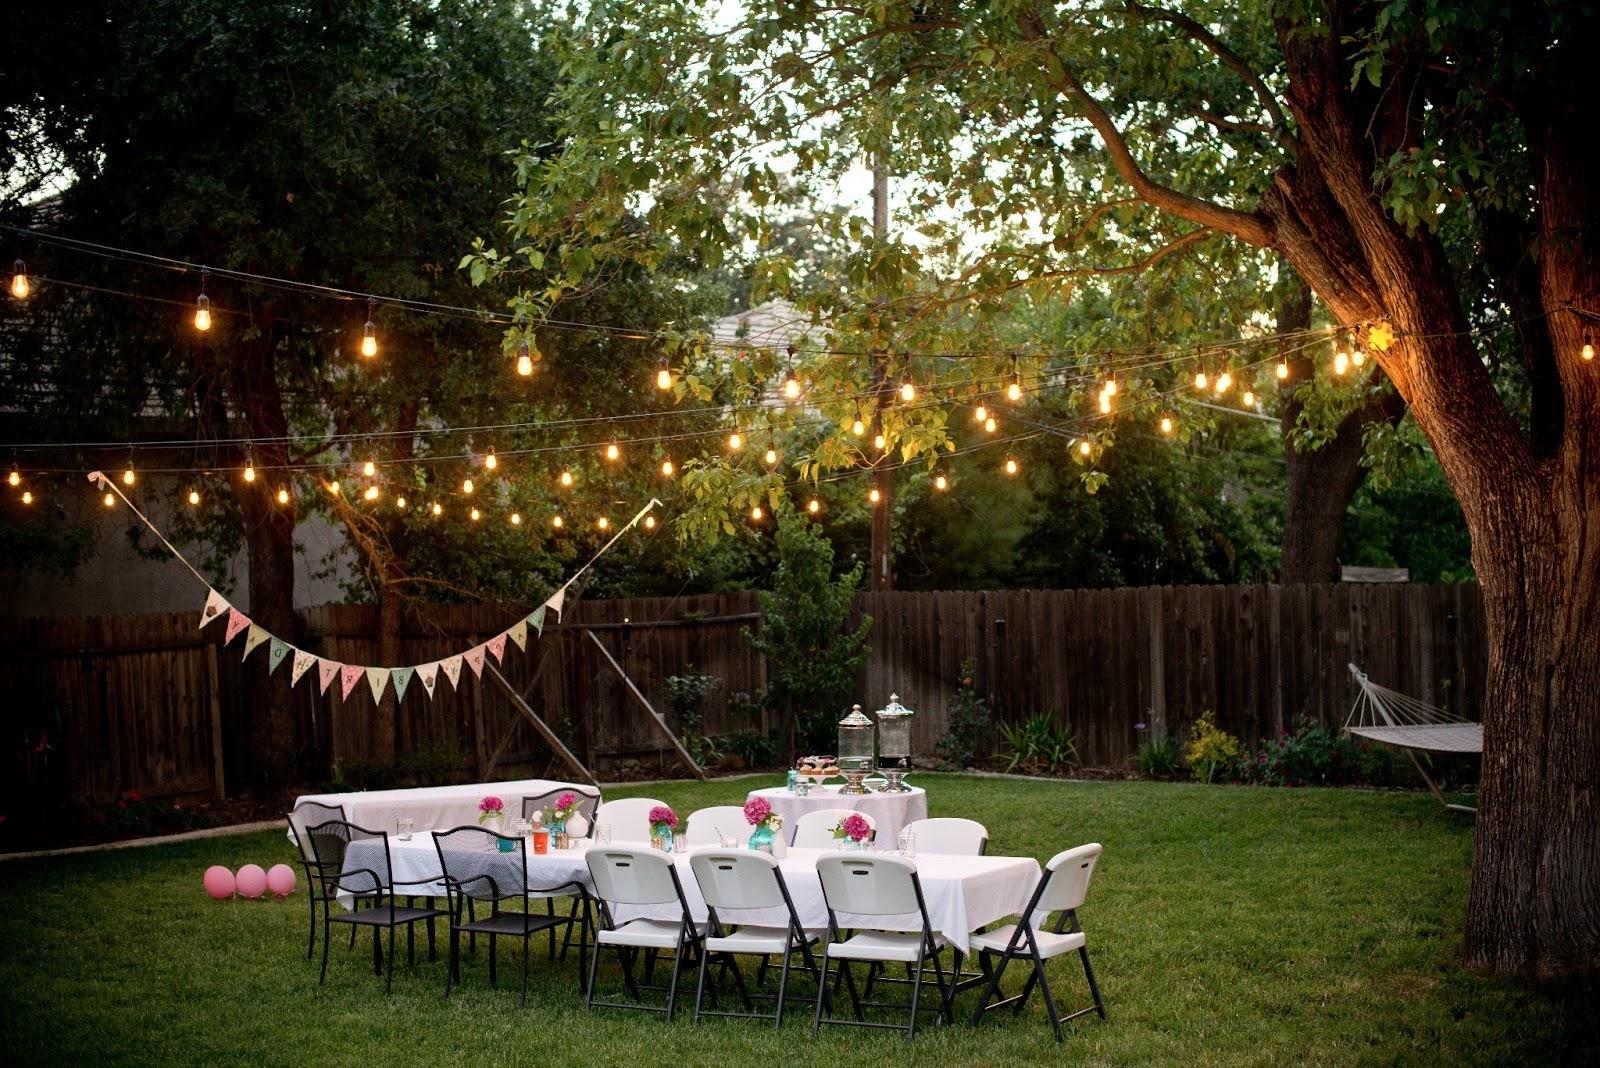 2018 Outdoor Lanterns For Parties In Cheap Outdoor Lights String Net Party Lighting Ideas For Weddings (View 8 of 20)